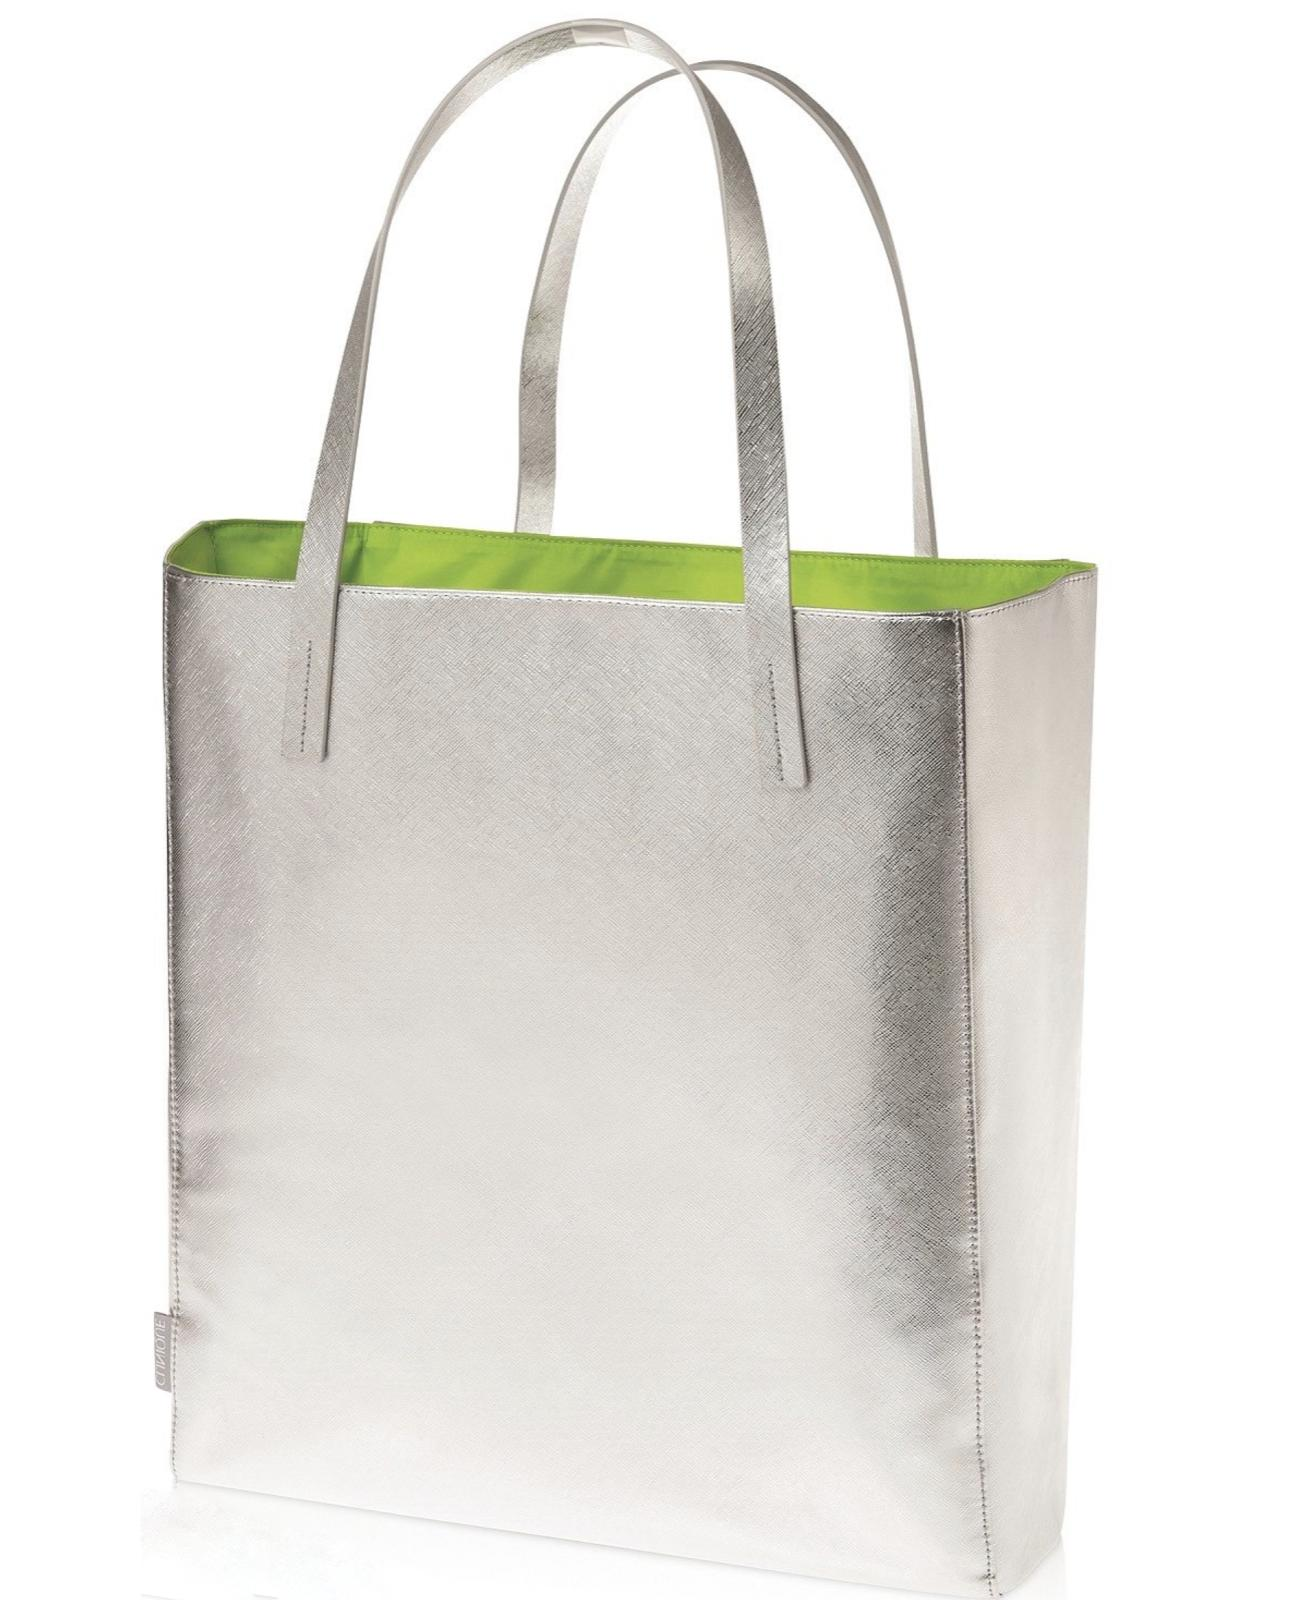 limited edition large silver with green tote